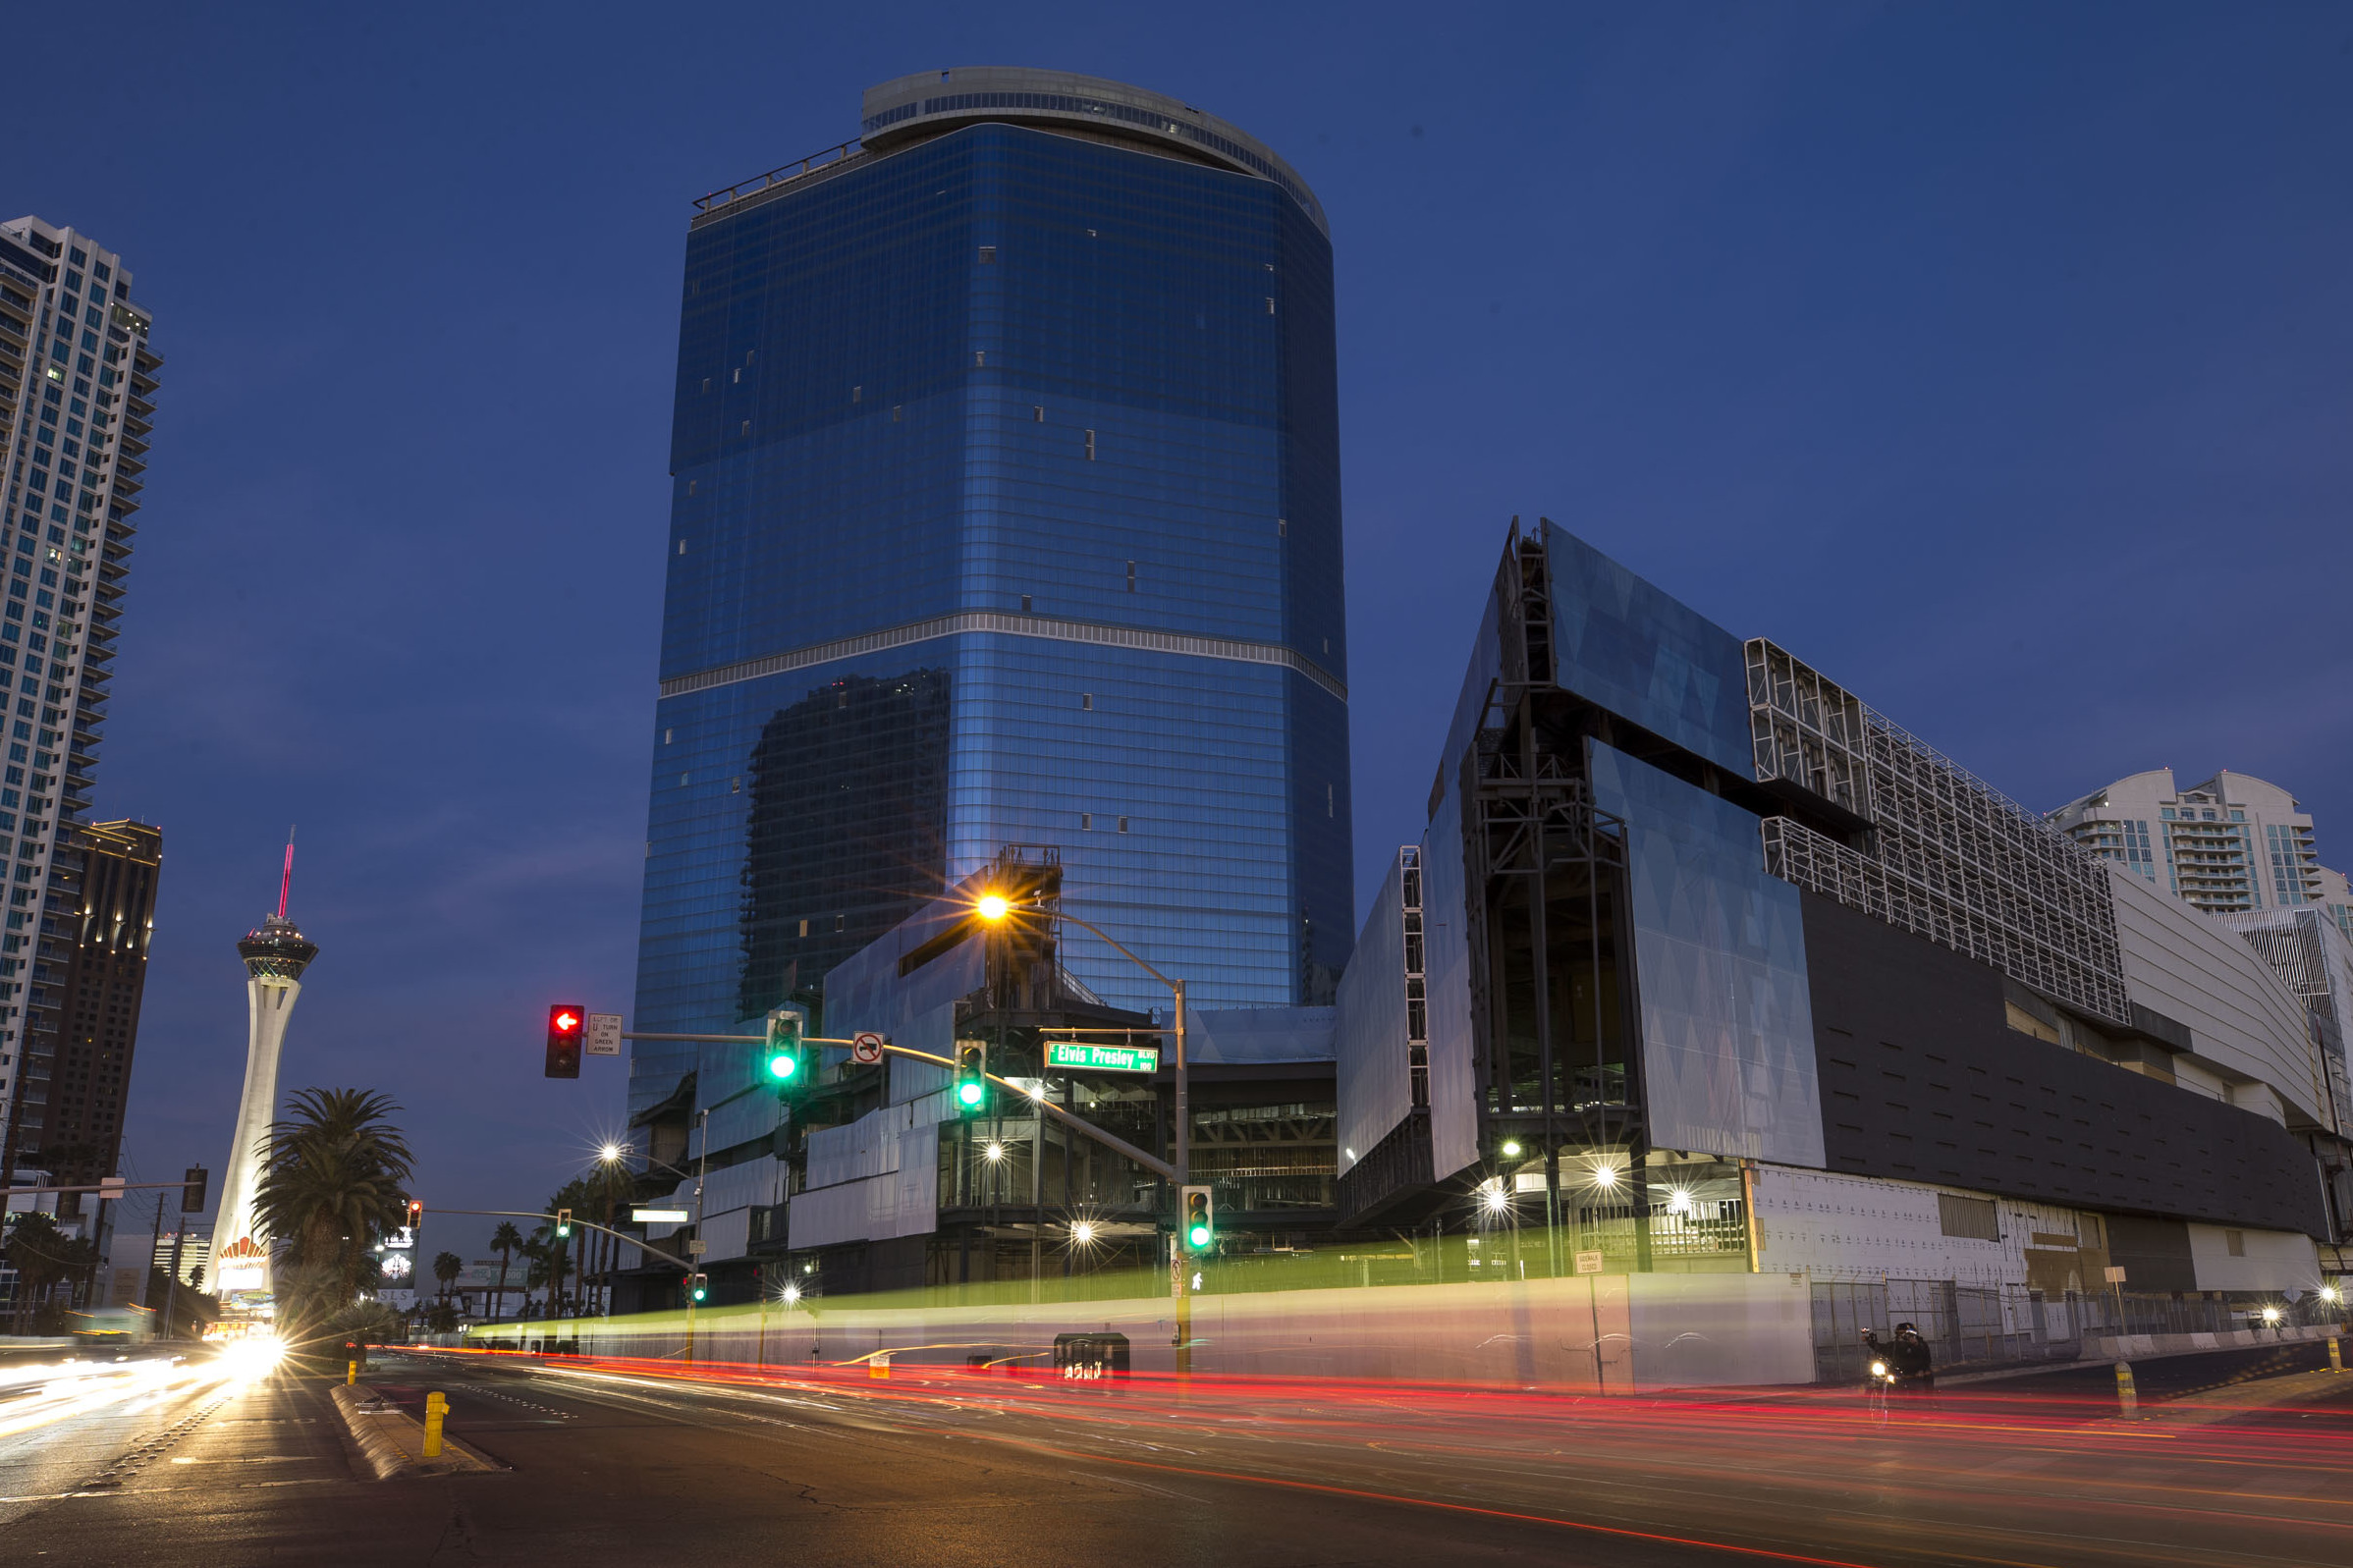 The Drew Formerly The Fontainebleau On The Las Vegas Strip Richard Brian Las Vegas Review Journal